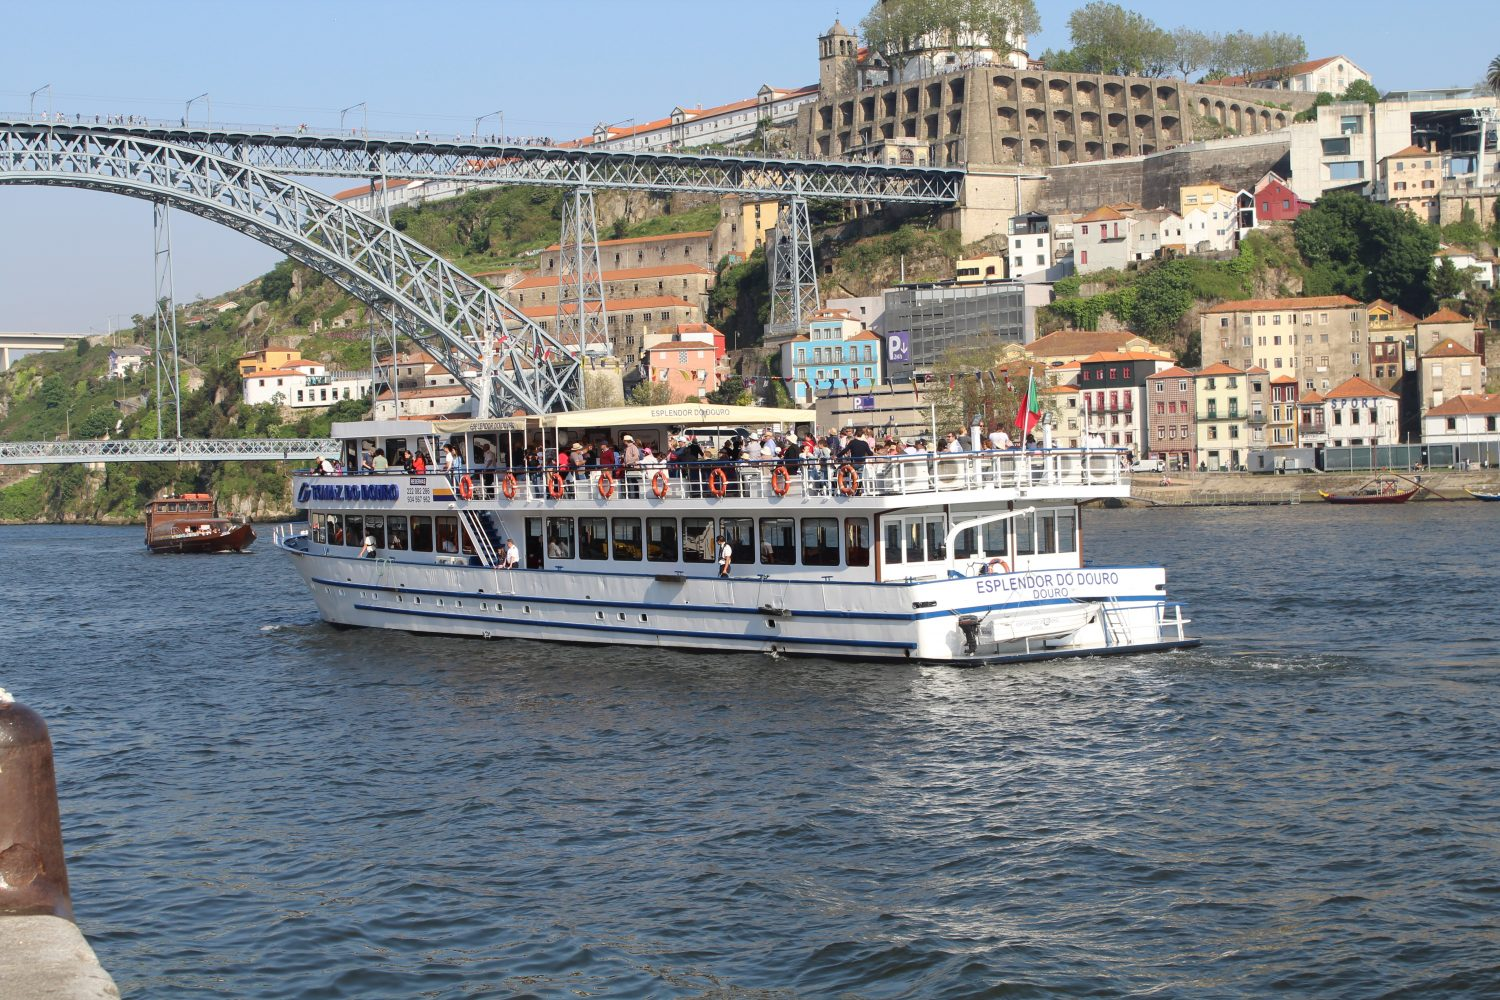 douro cruise boat at porto